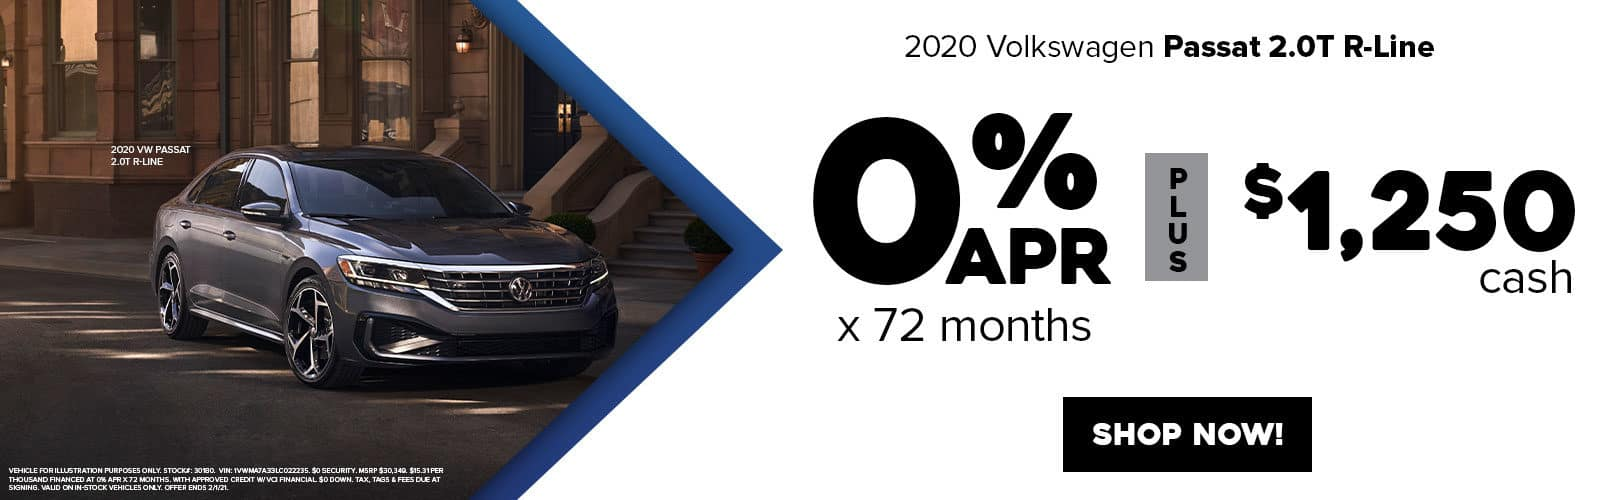 1_21_Wyoming_Valley_VW_Web_Banners-2020-Passat